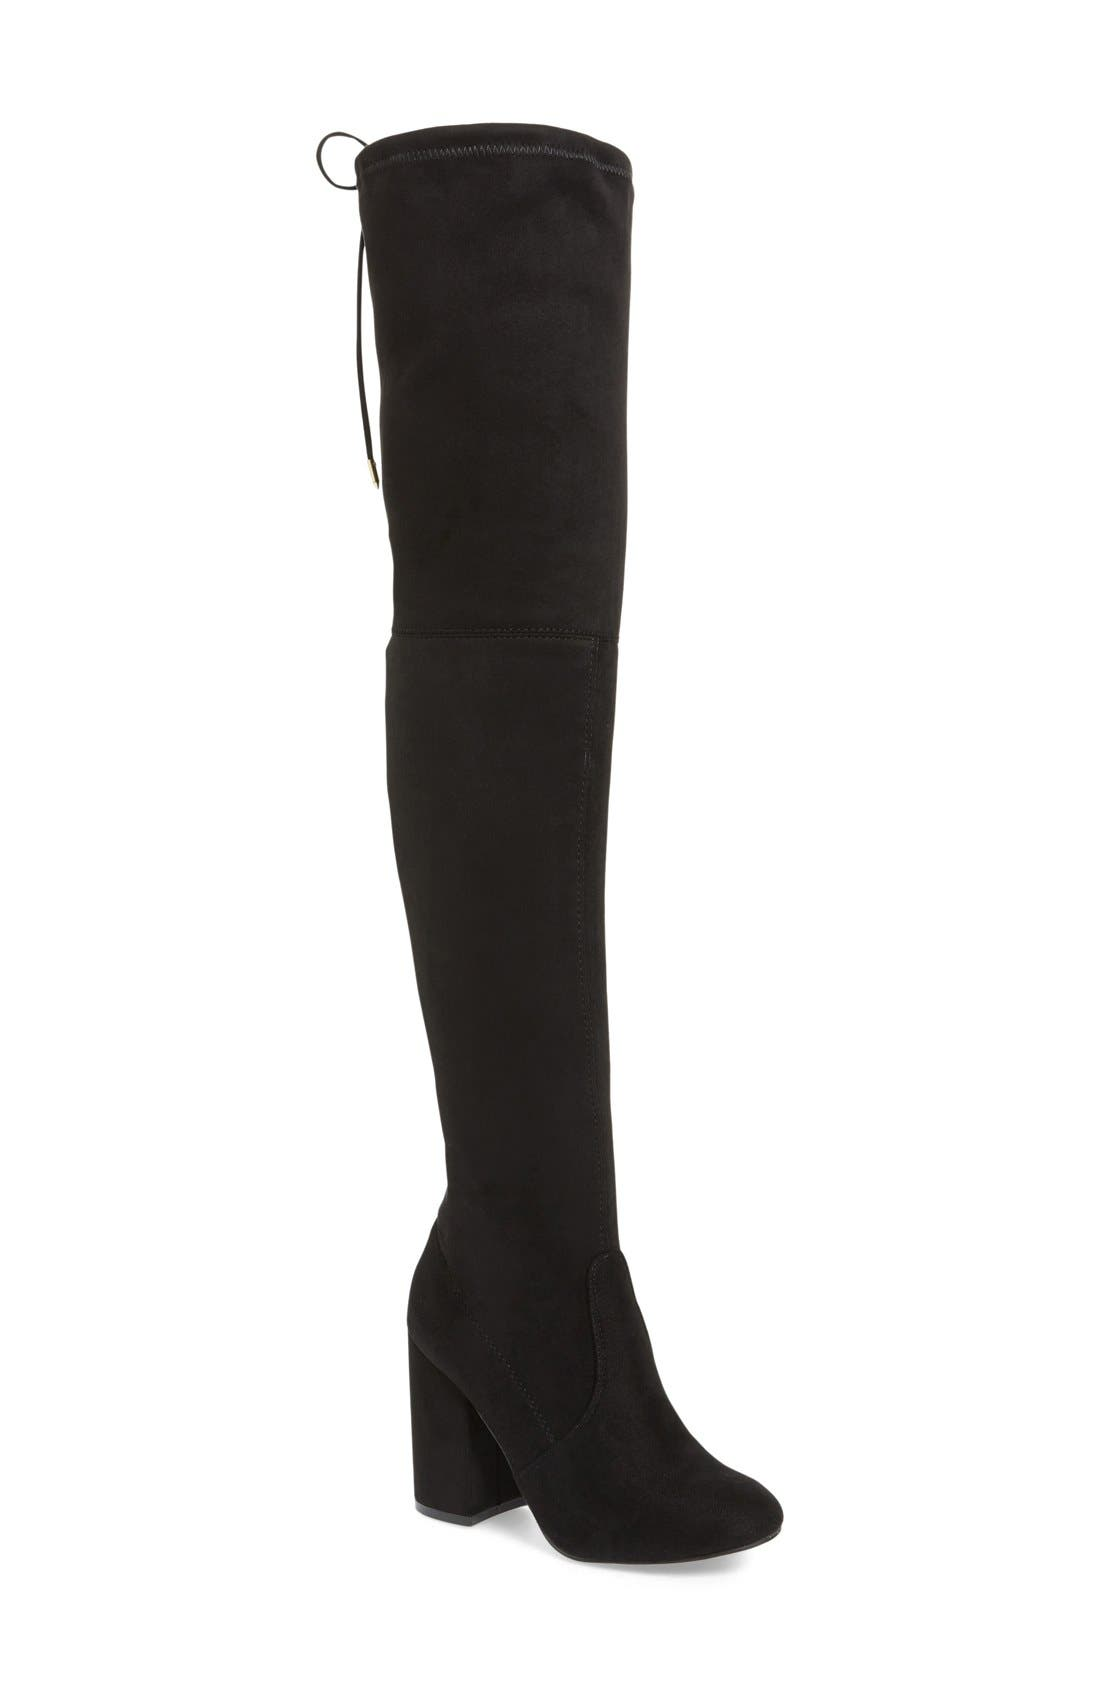 Norri Over the Knee Boot,                             Main thumbnail 1, color,                             019